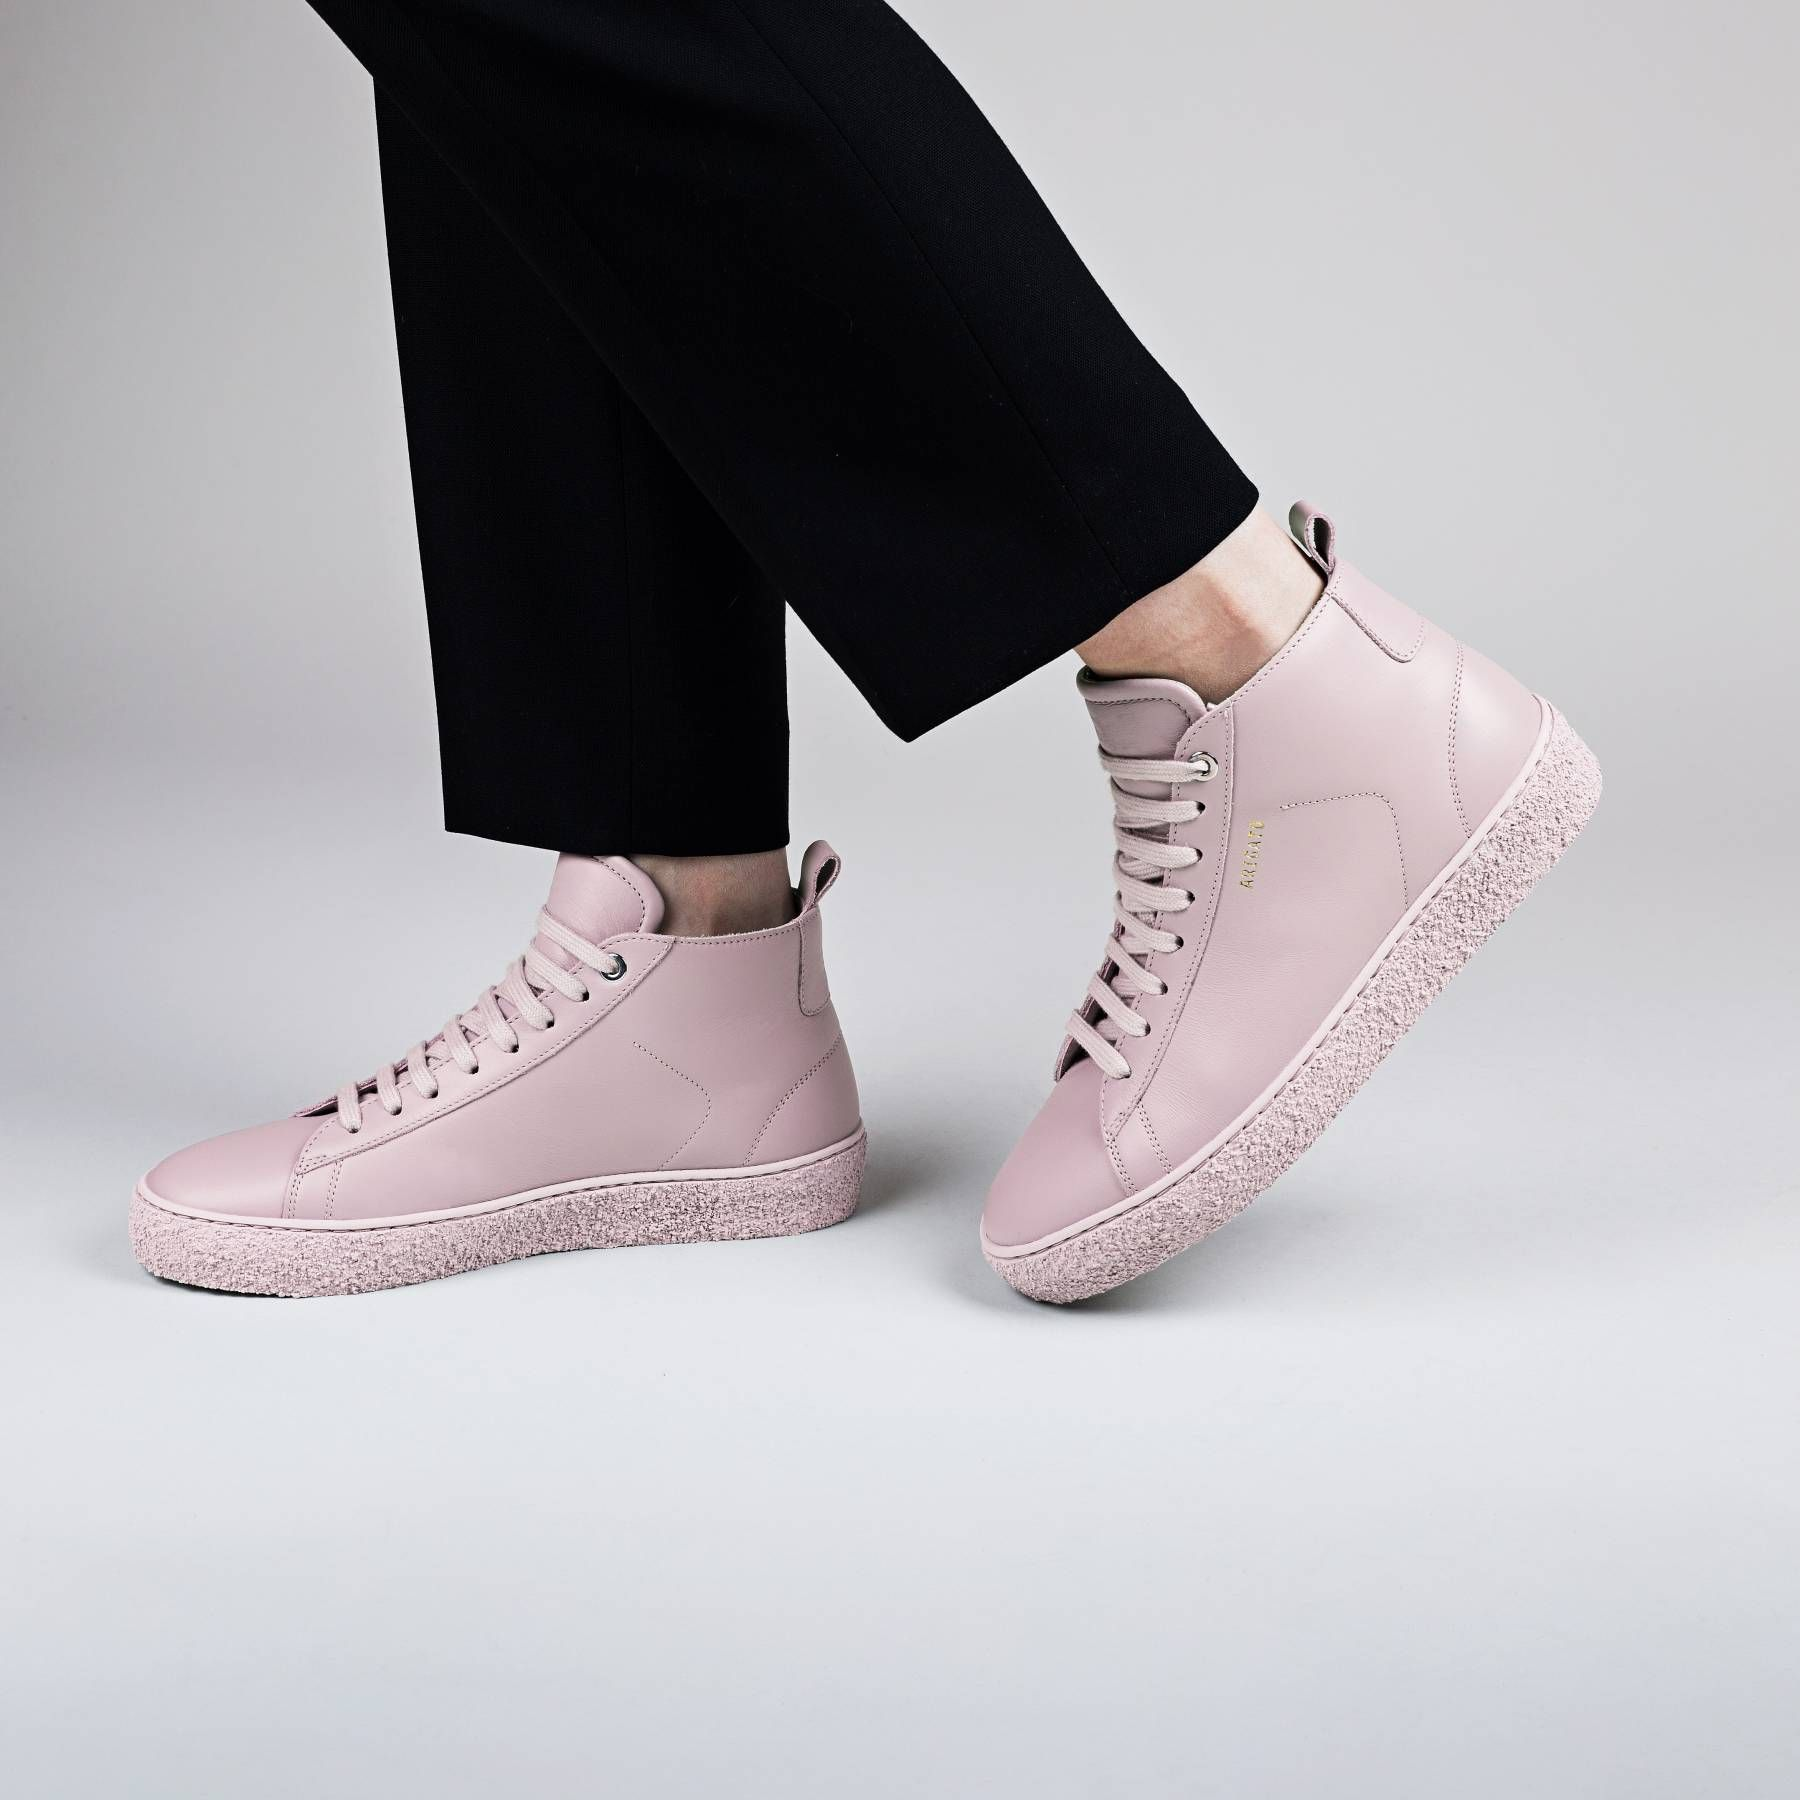 f49a6bb356 AXEL ARIGATO - Court Sneaker Pale Pink Leather